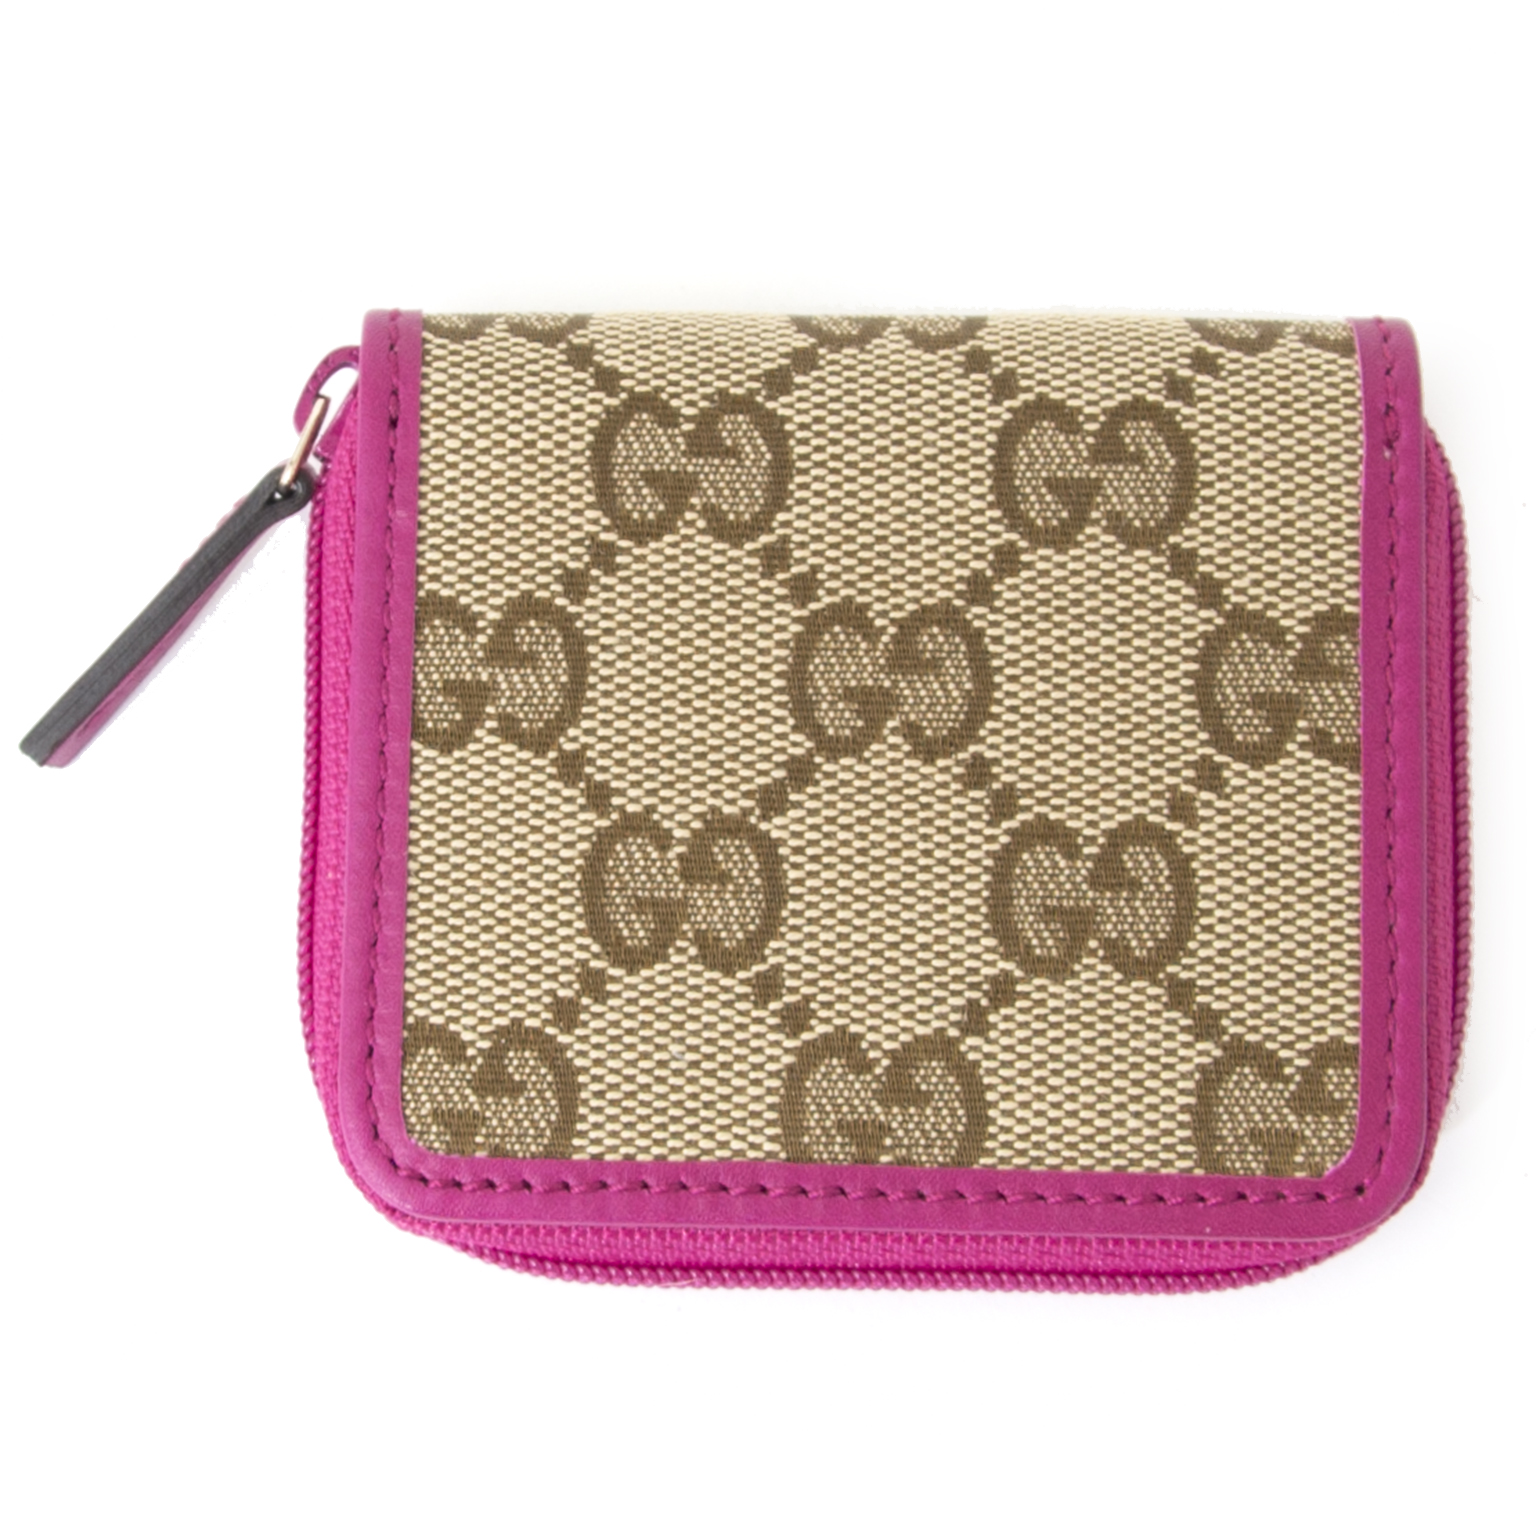 Buy authentic Gucci wallet at the right price at LabelLOV vintage webshop. Luxe, vintage, fashion. Safe and secure online shopping. Antwerp, Belgium